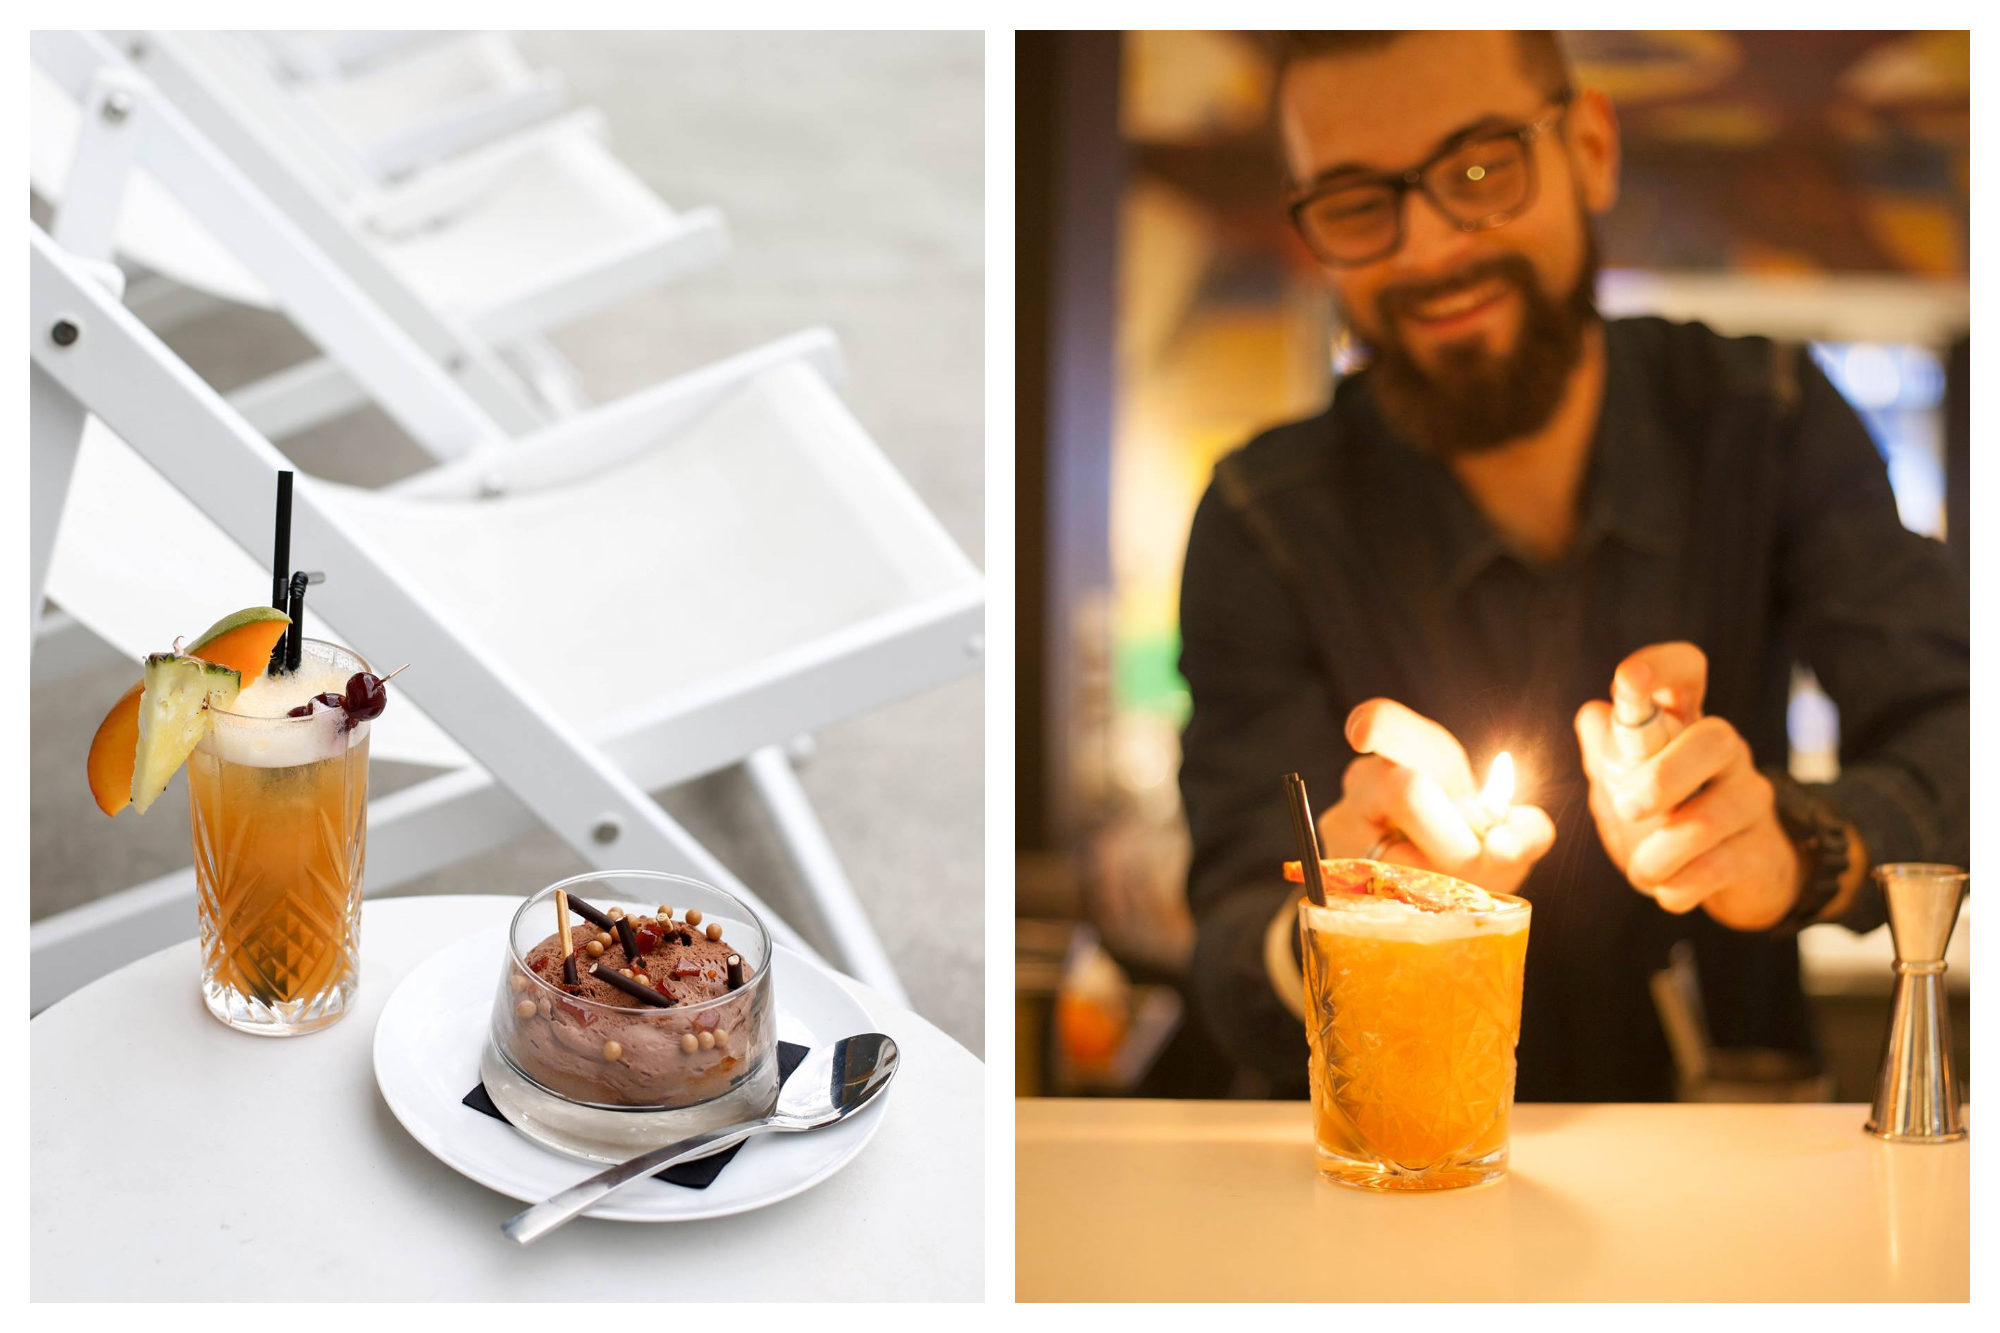 A cocktail and chocolate mousse dessert served by white deckchairs on the Molitor Hotel terrace in Paris (left) and the barman making a cocktail by lighting the top (right).